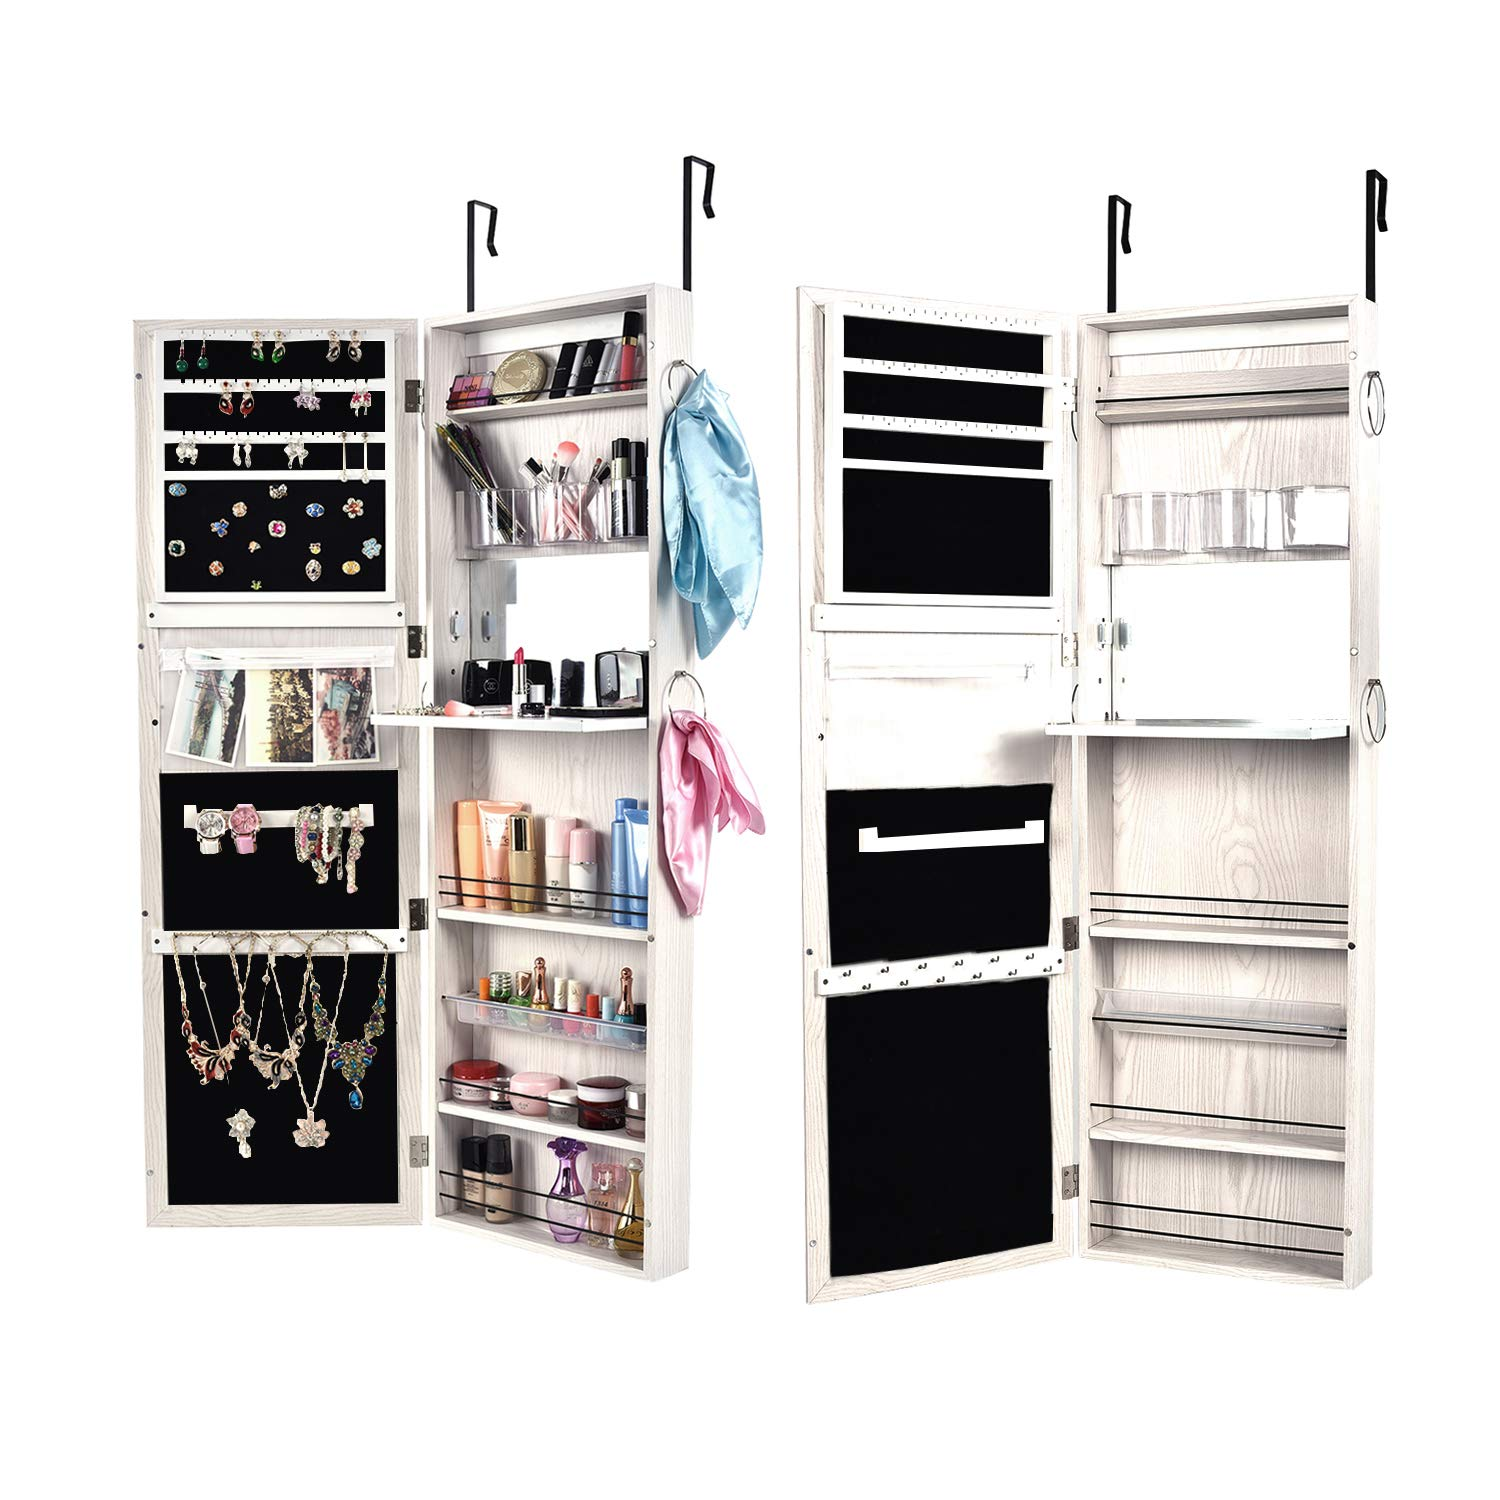 """Bonnlo 2 in 1 Jewelry Armoire Wall Mounted/Door Hanging Cabinet,Full Length Mirror Lockable Storage Bedroom Organizer,Xmas New Year, 52"""" L X 18"""" W"""